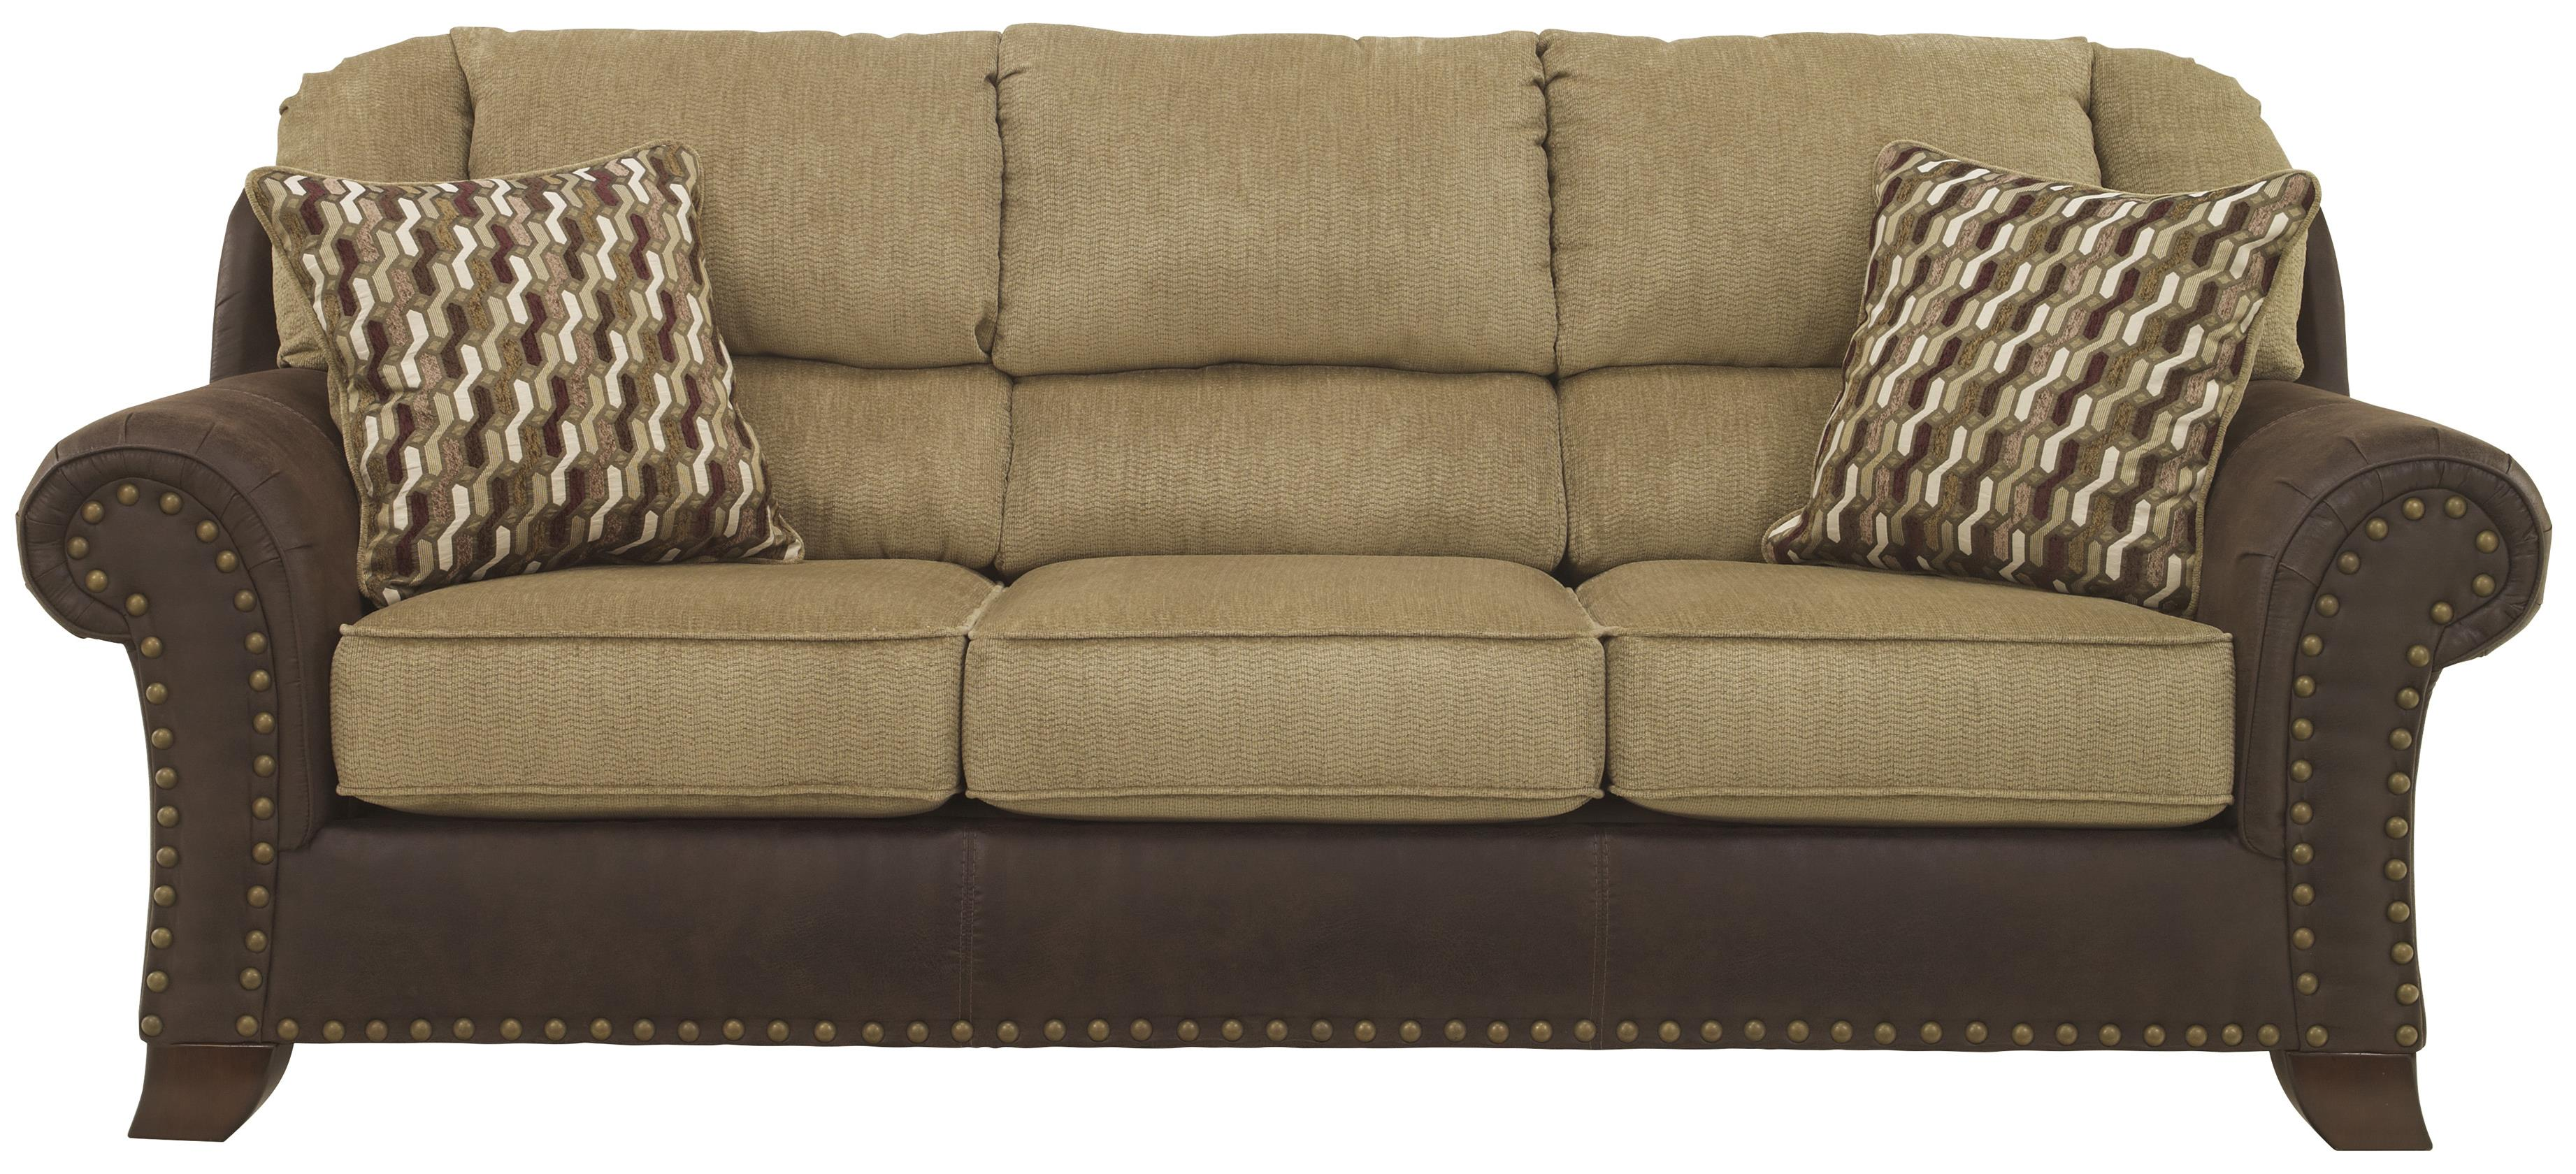 Benchcraft vandive 4430038 two tone sofa with chenille for Furniture upholstery